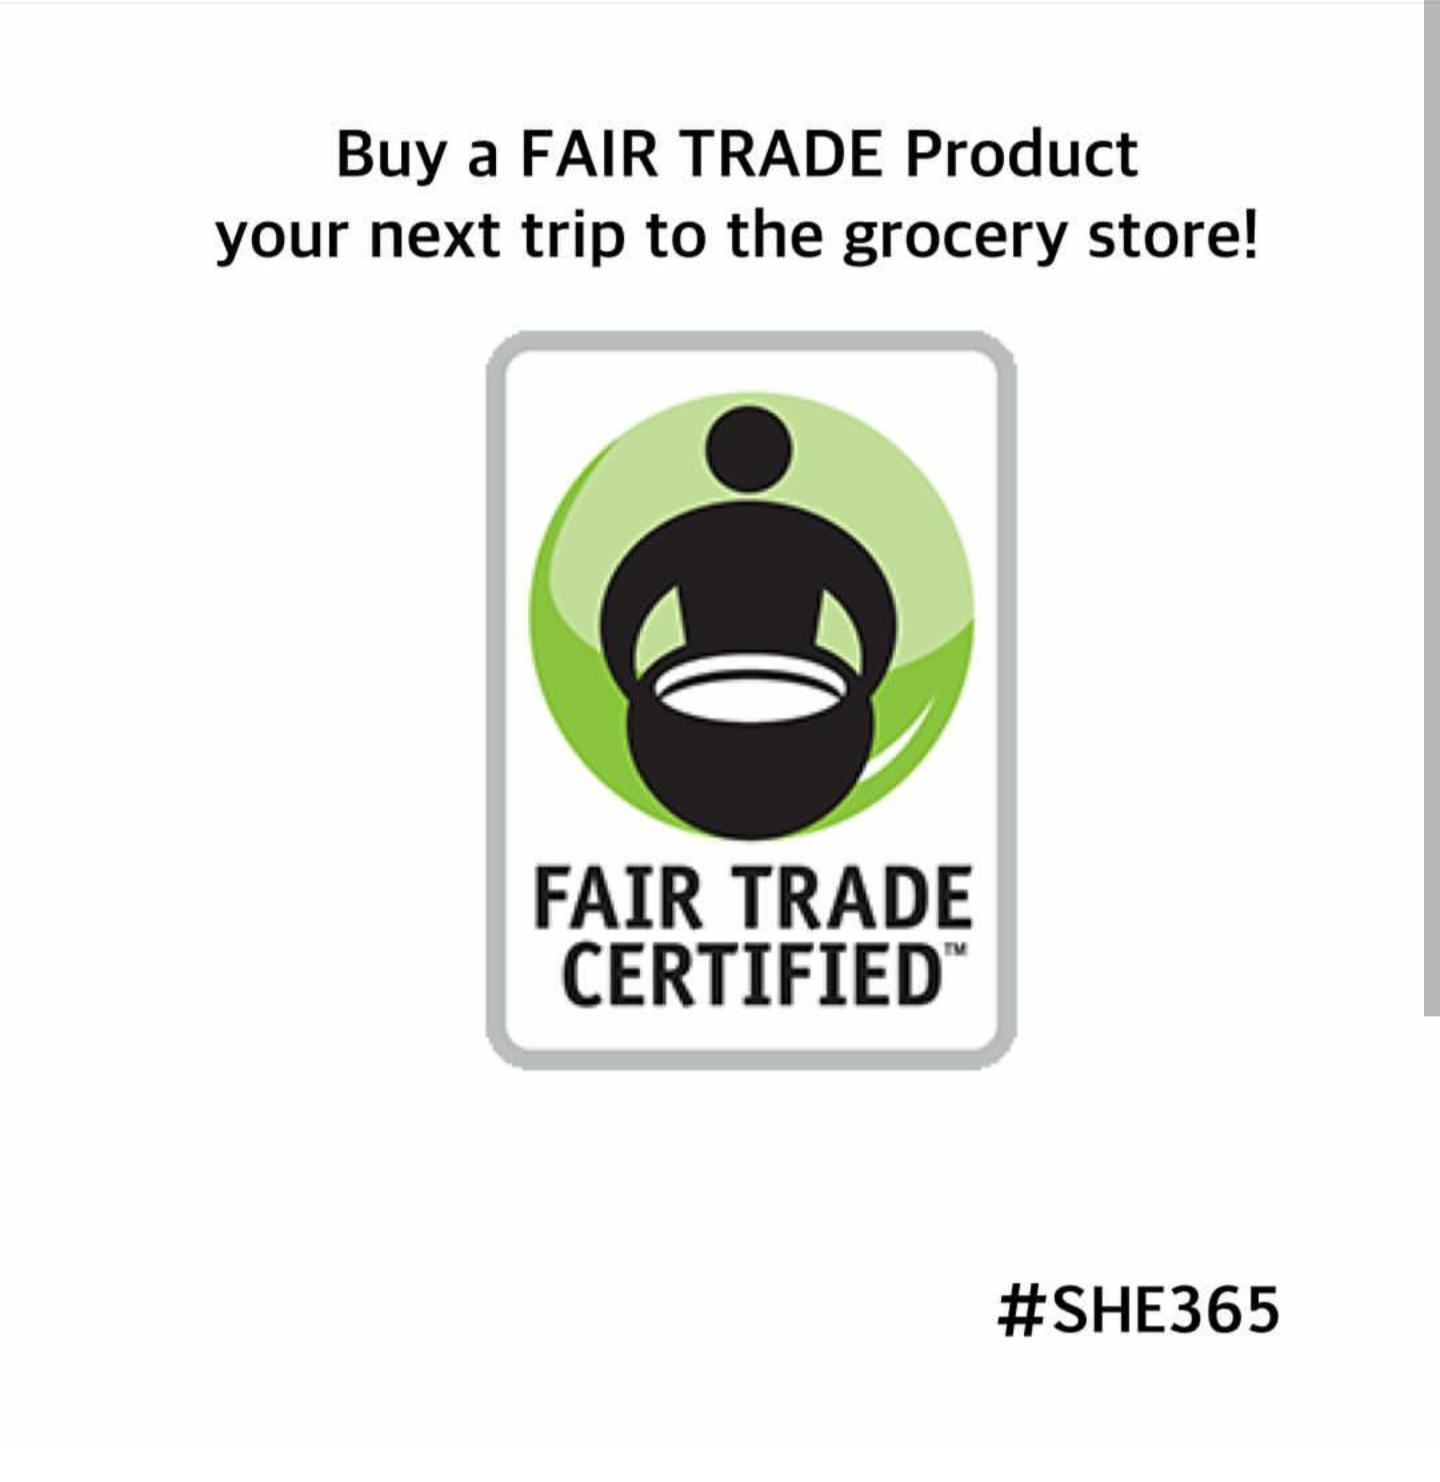 #SHE365 The next time you are out shopping, look for the #fairtrade symbol! This tiny act of purchasing everyday goods with this symbol let's you live your values! Fair trade products are made with respect for people and the planet. Rigorous social, environmental, and economic standards promote safe, healthy working conditions, protect the environment, enable transparency, and empower communities and workers to build strong, thriving businesses.